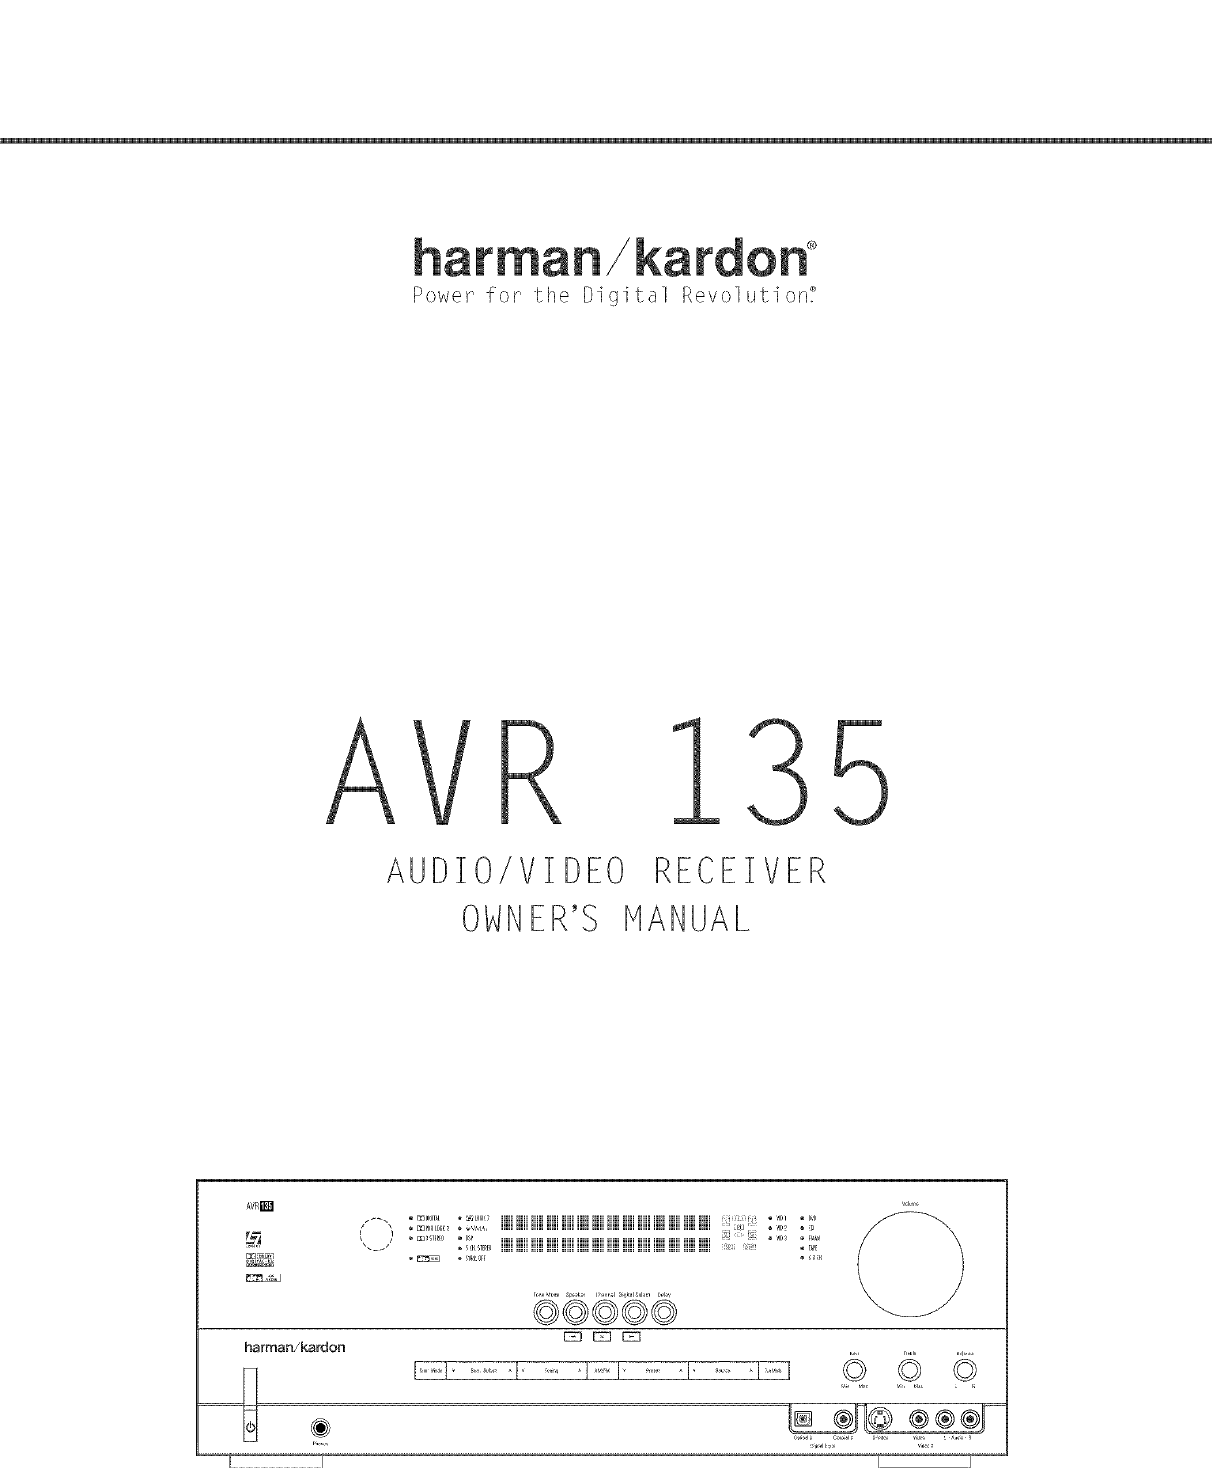 Harman Kardon AVR135 User Manual AV RECEIVER Manuals And